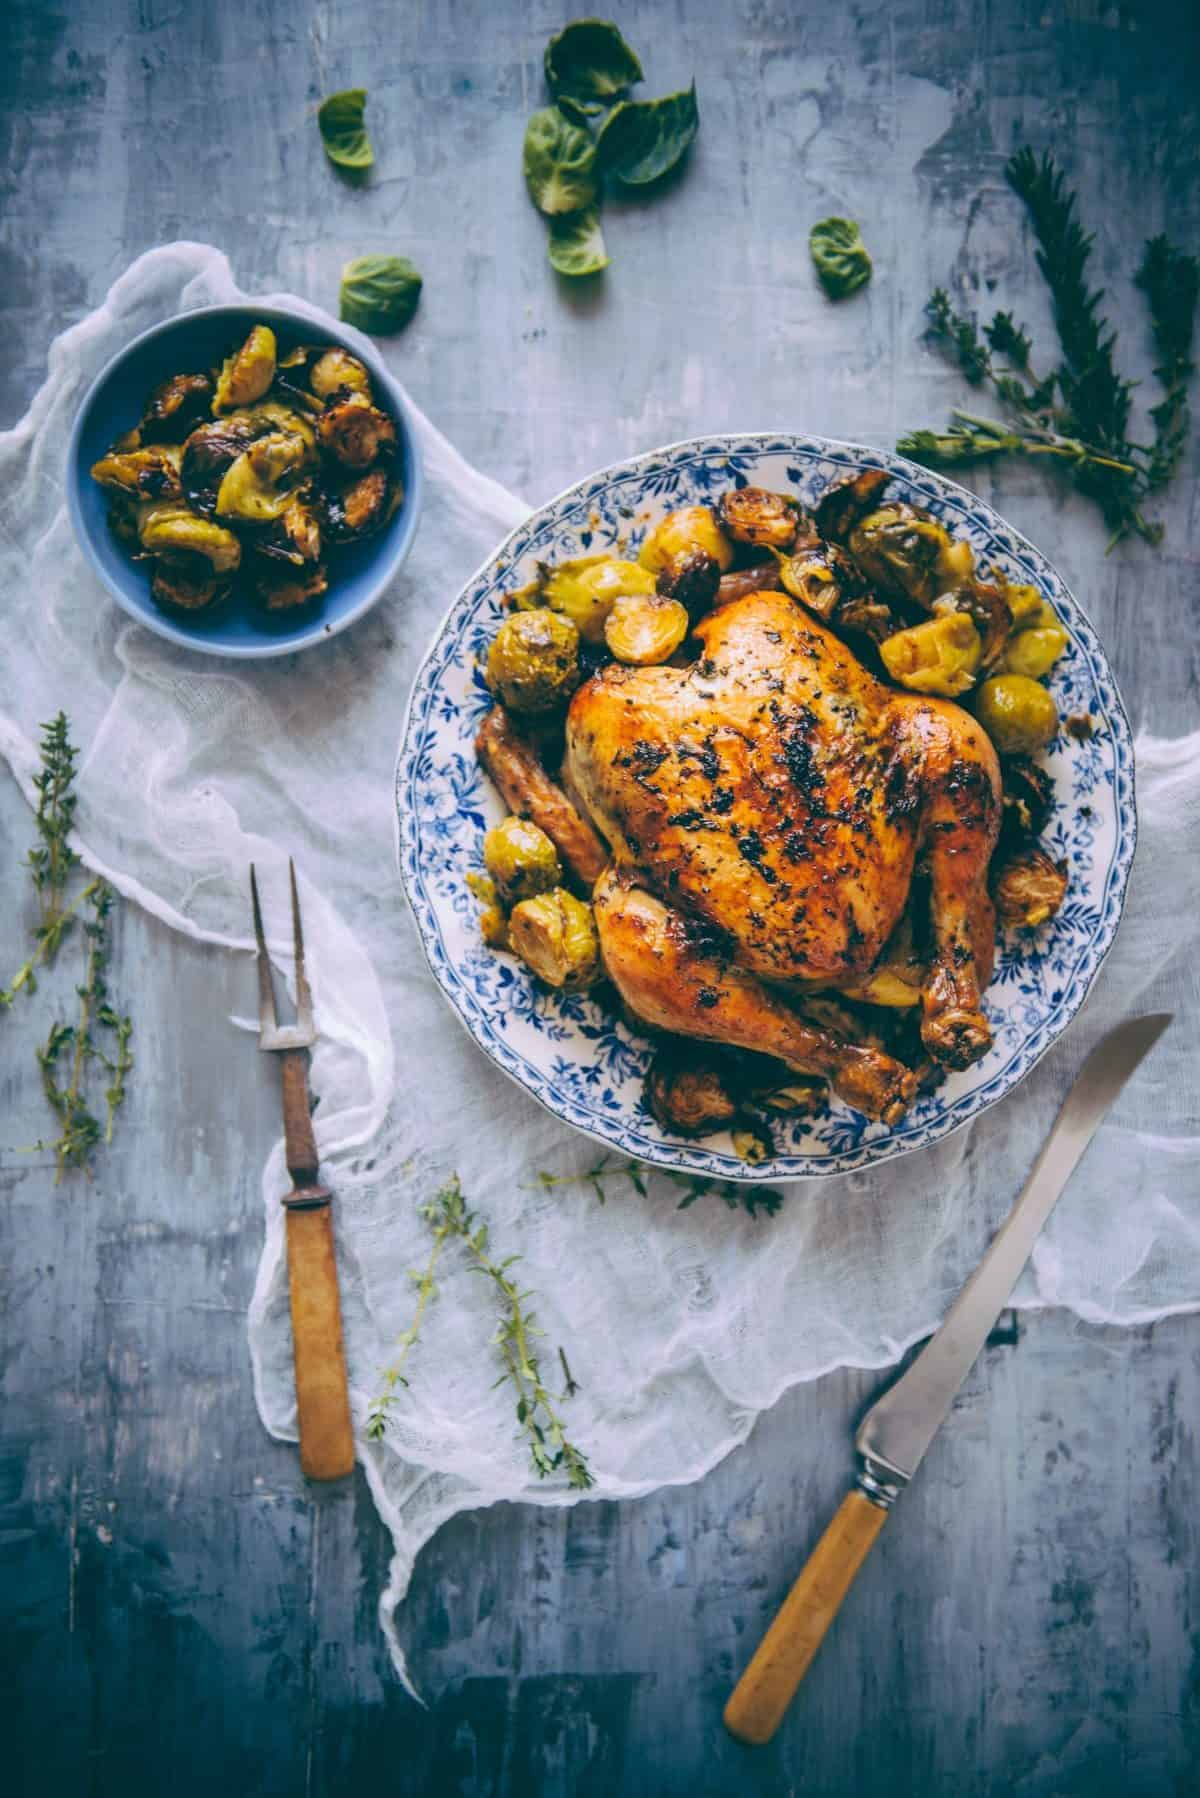 roast chicken recipe with brussels sprouts